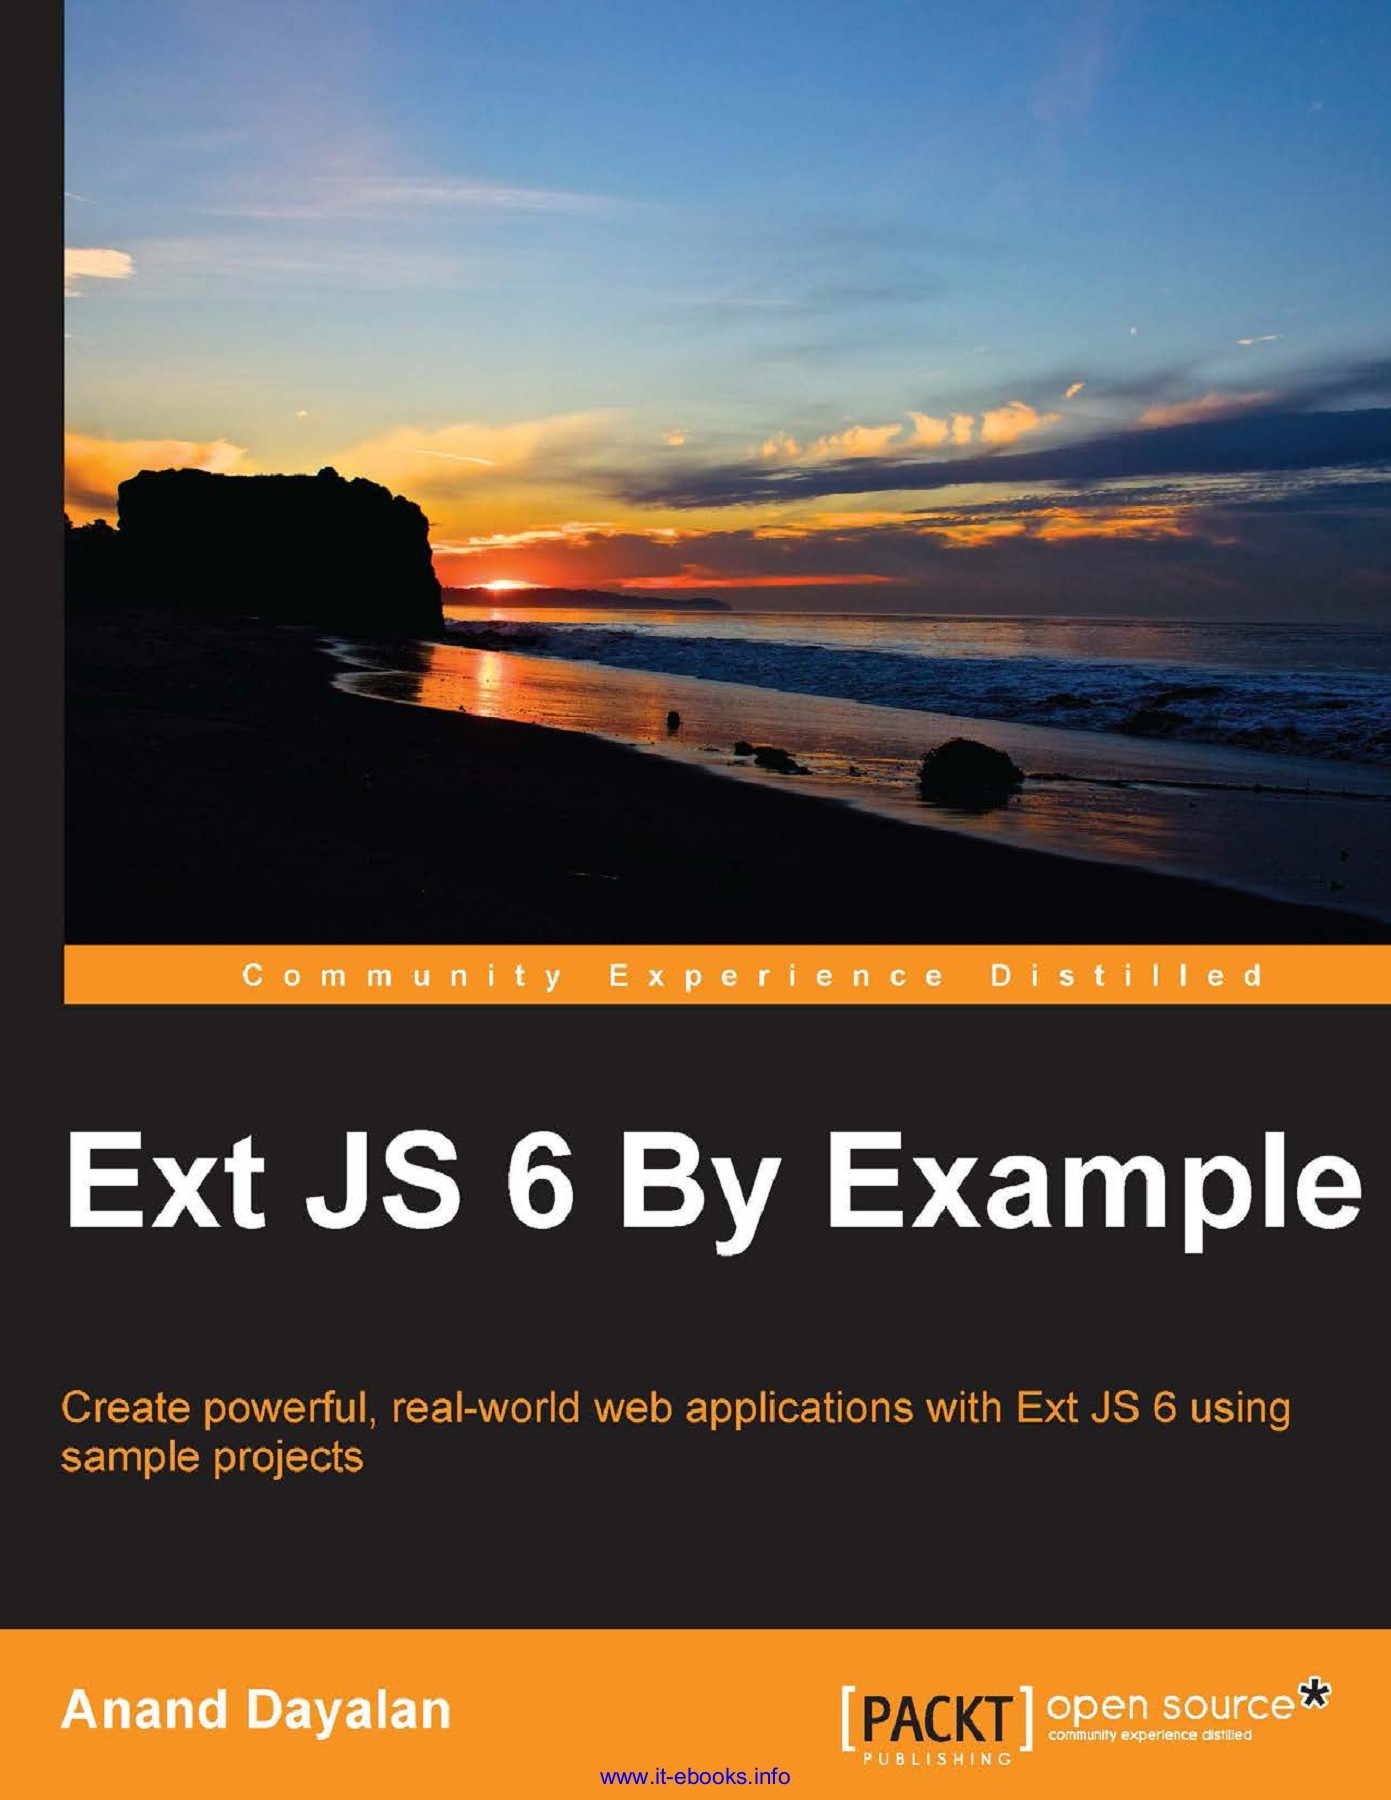 Ext JS 6 By Example Pages 151 - 200 - Text Version | AnyFlip